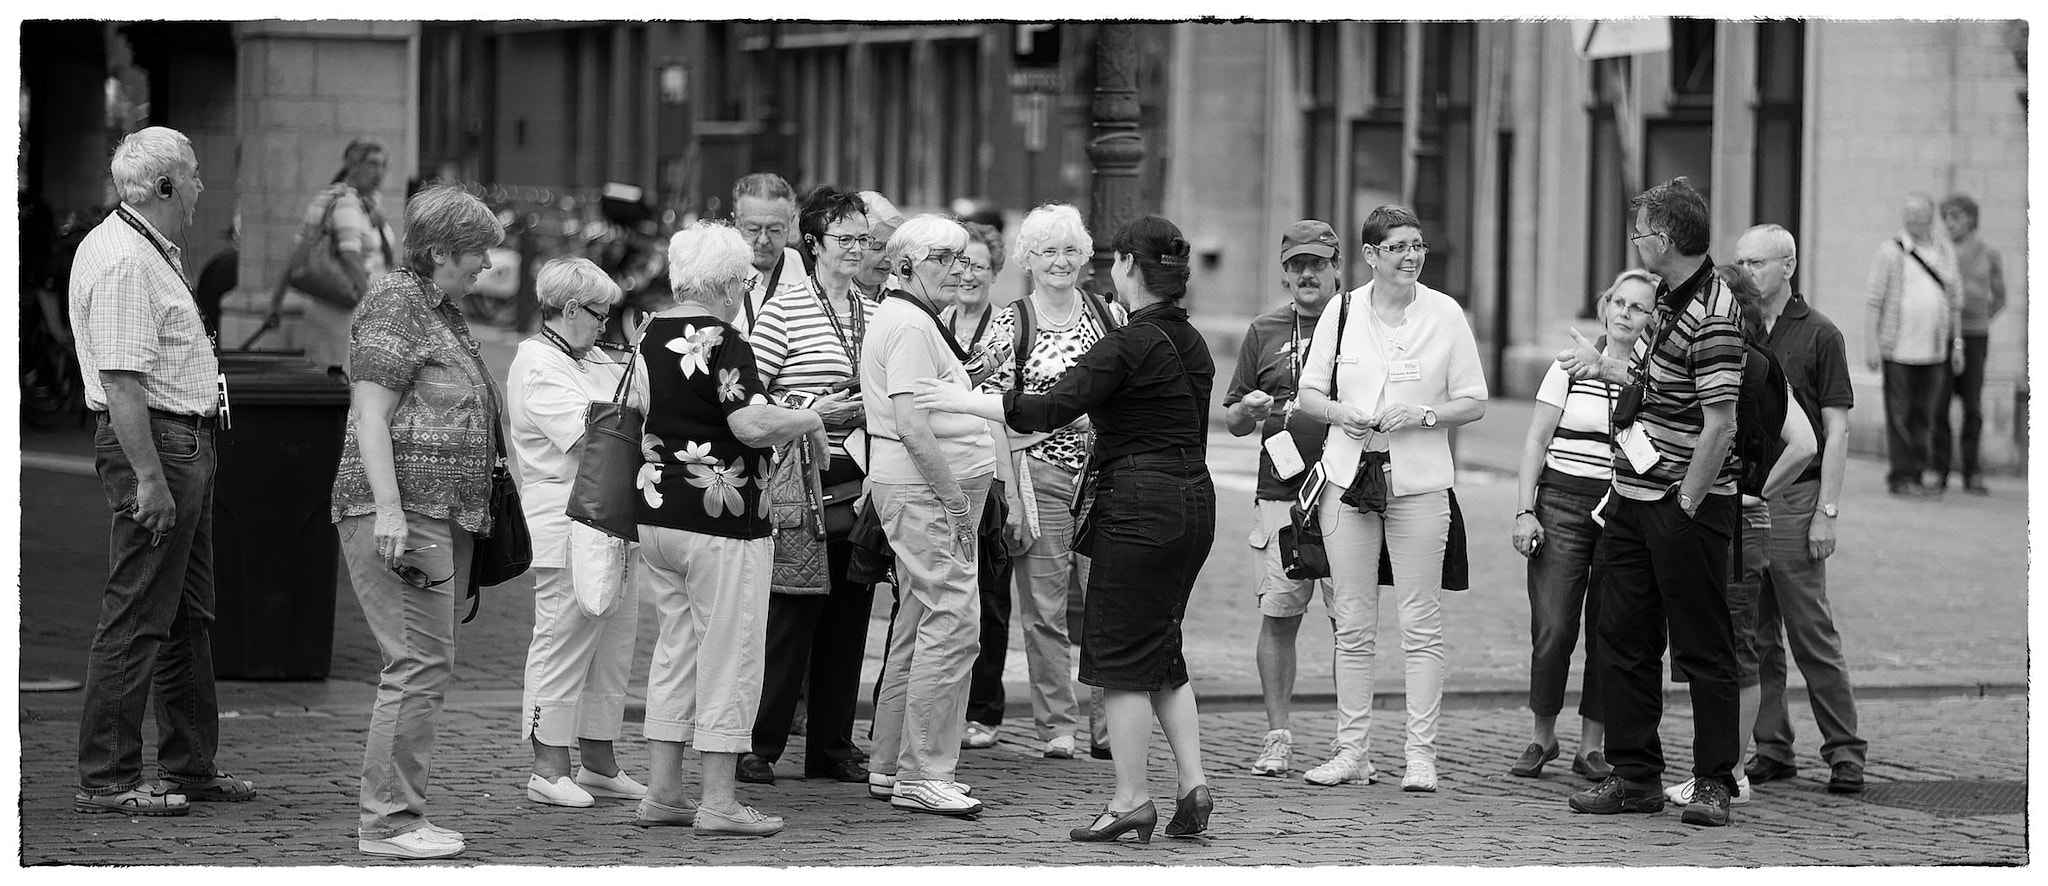 Photograph Tourists by Fouquier  on 500px